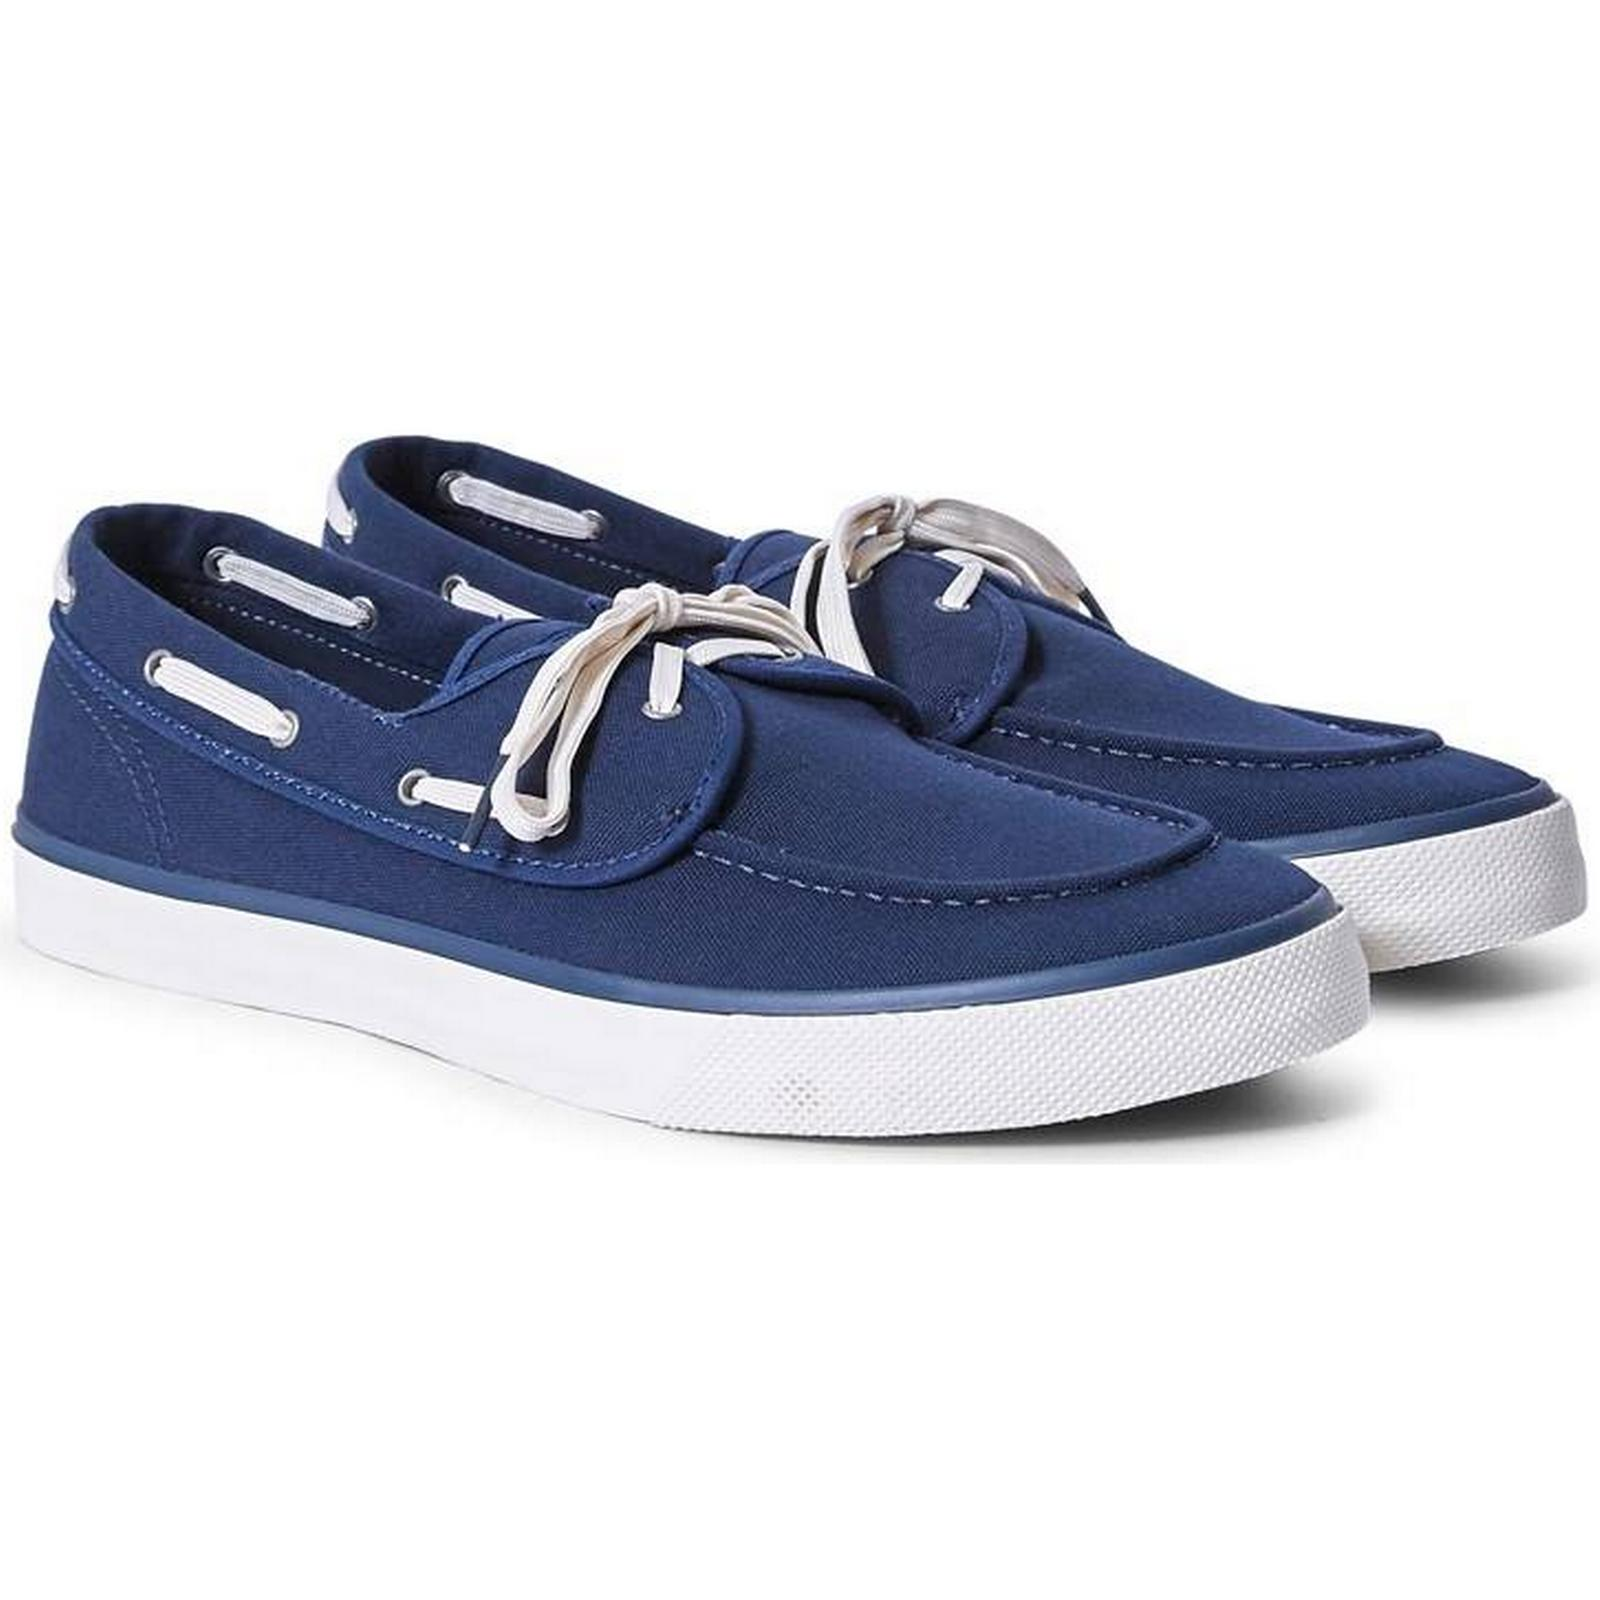 Sperry Casual Canvas 2 Eye Boat Navy Shoe Navy Boat 9c1c95